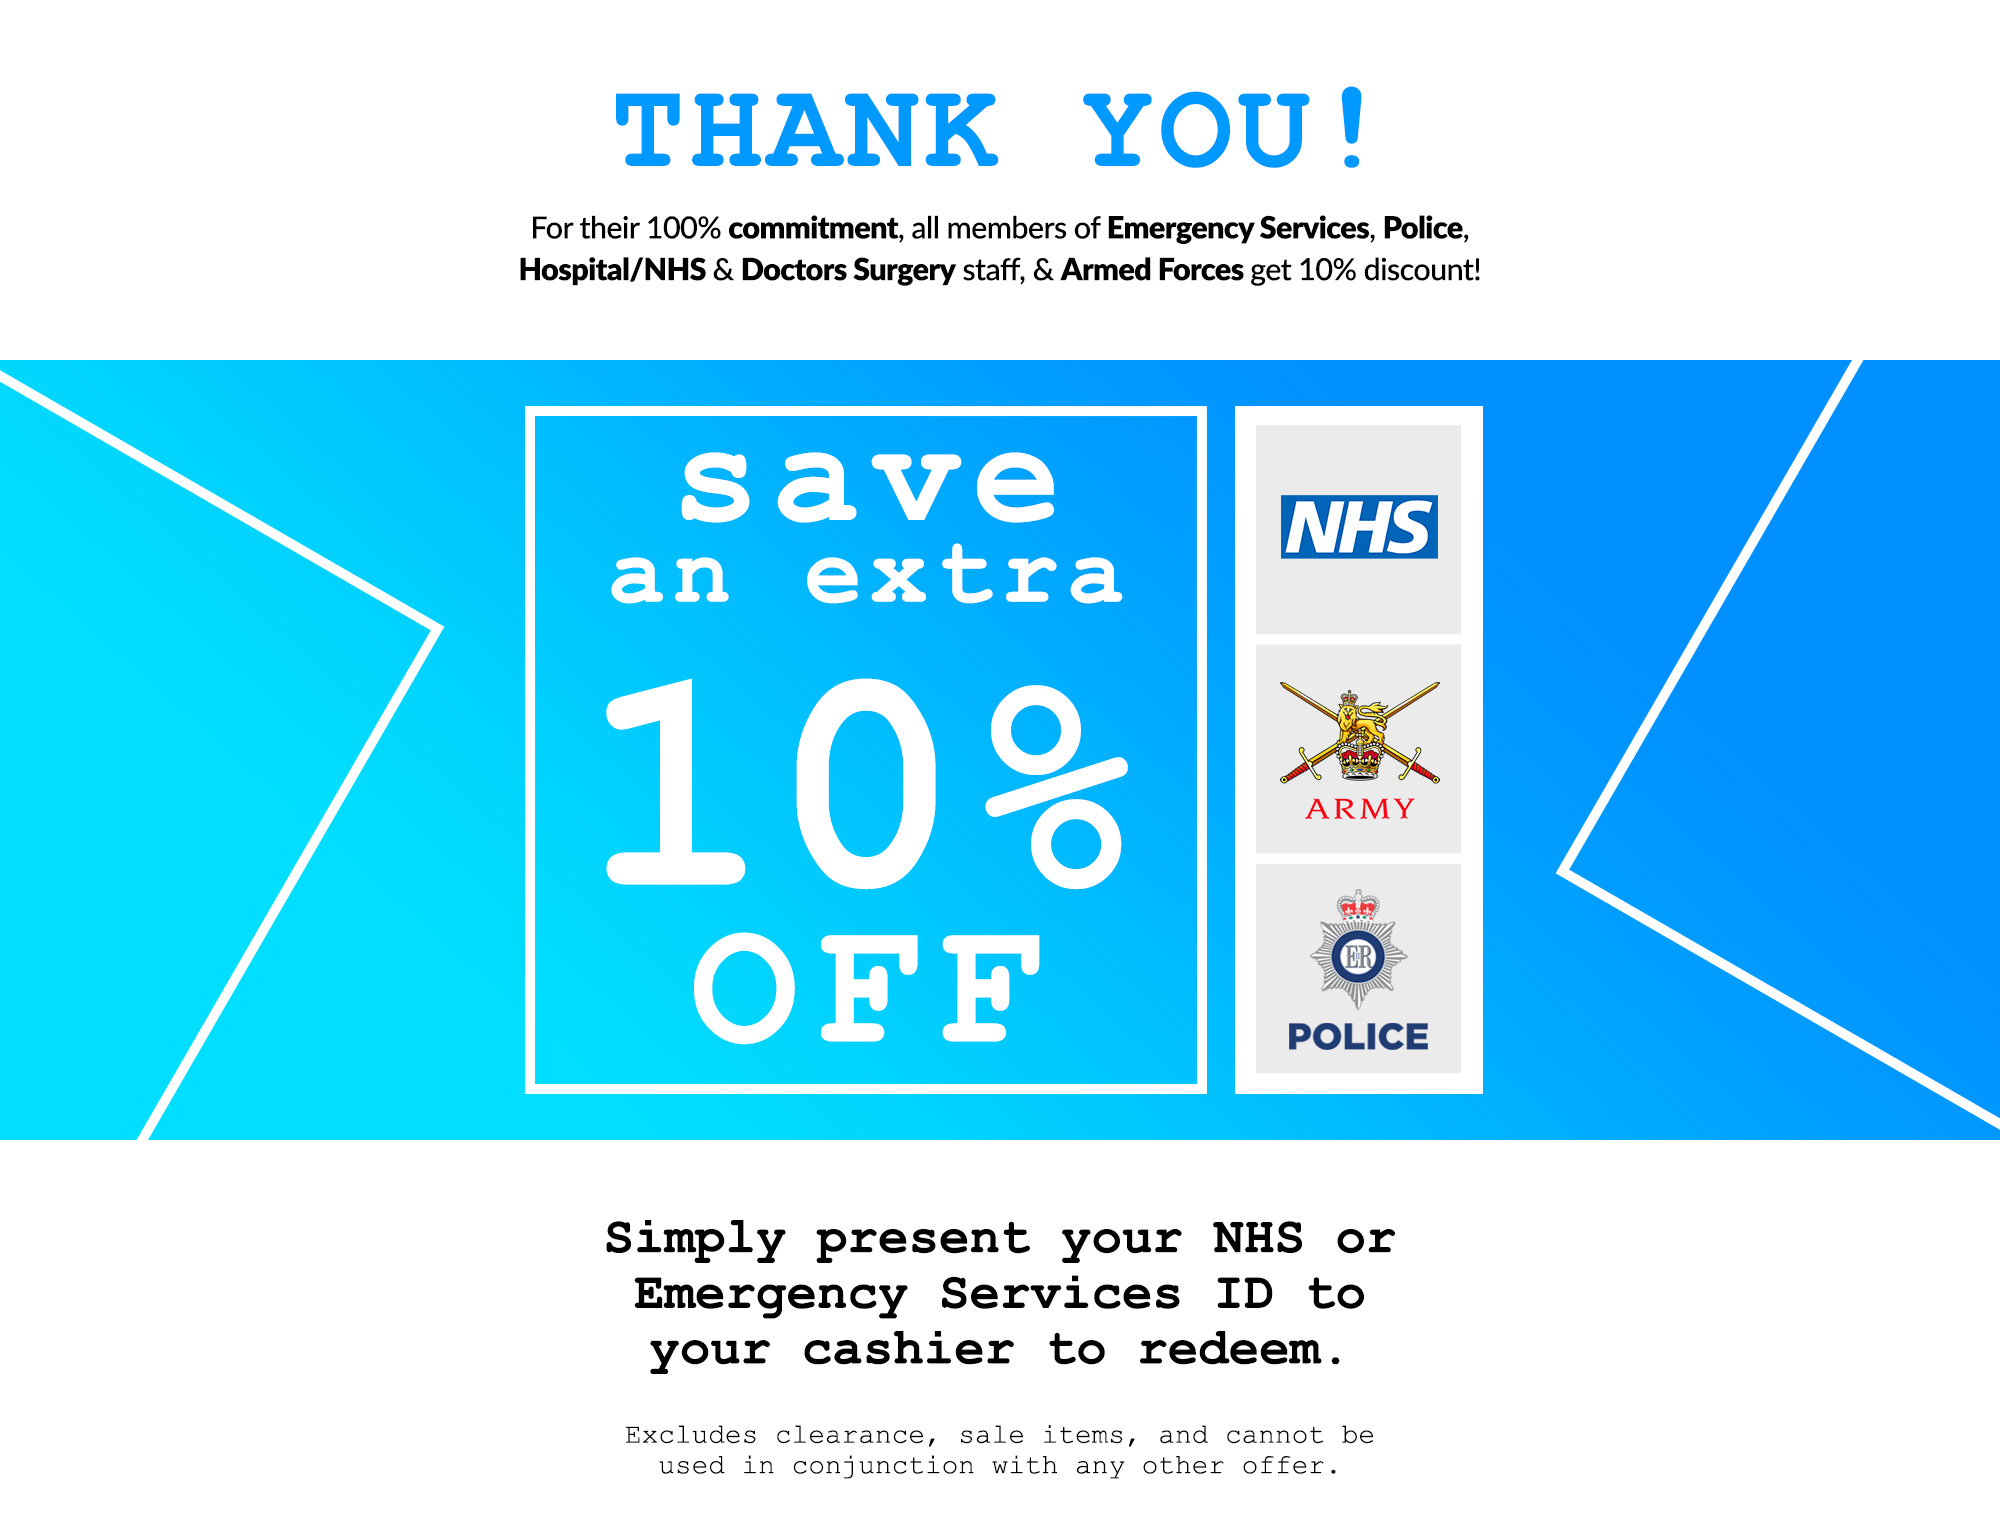 For their 100% commitment, all members of Emergency Services, Police, Hospital/NHS & Doctors Surgery staff, & Armed Forces get 10% discount!